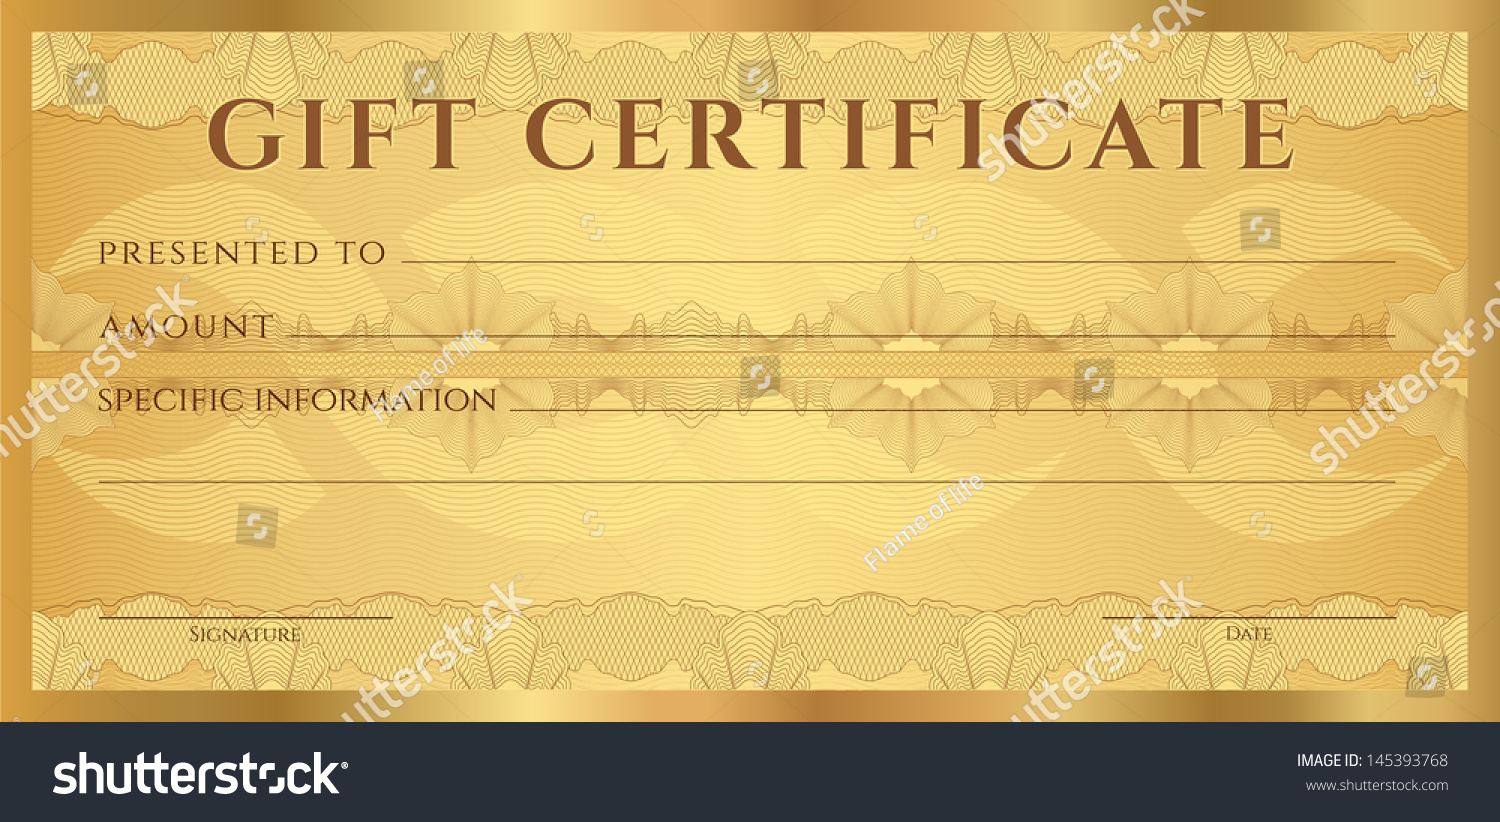 Gift Coupon Template | Gift Certificate Voucher Coupon Template Guilloche Stock